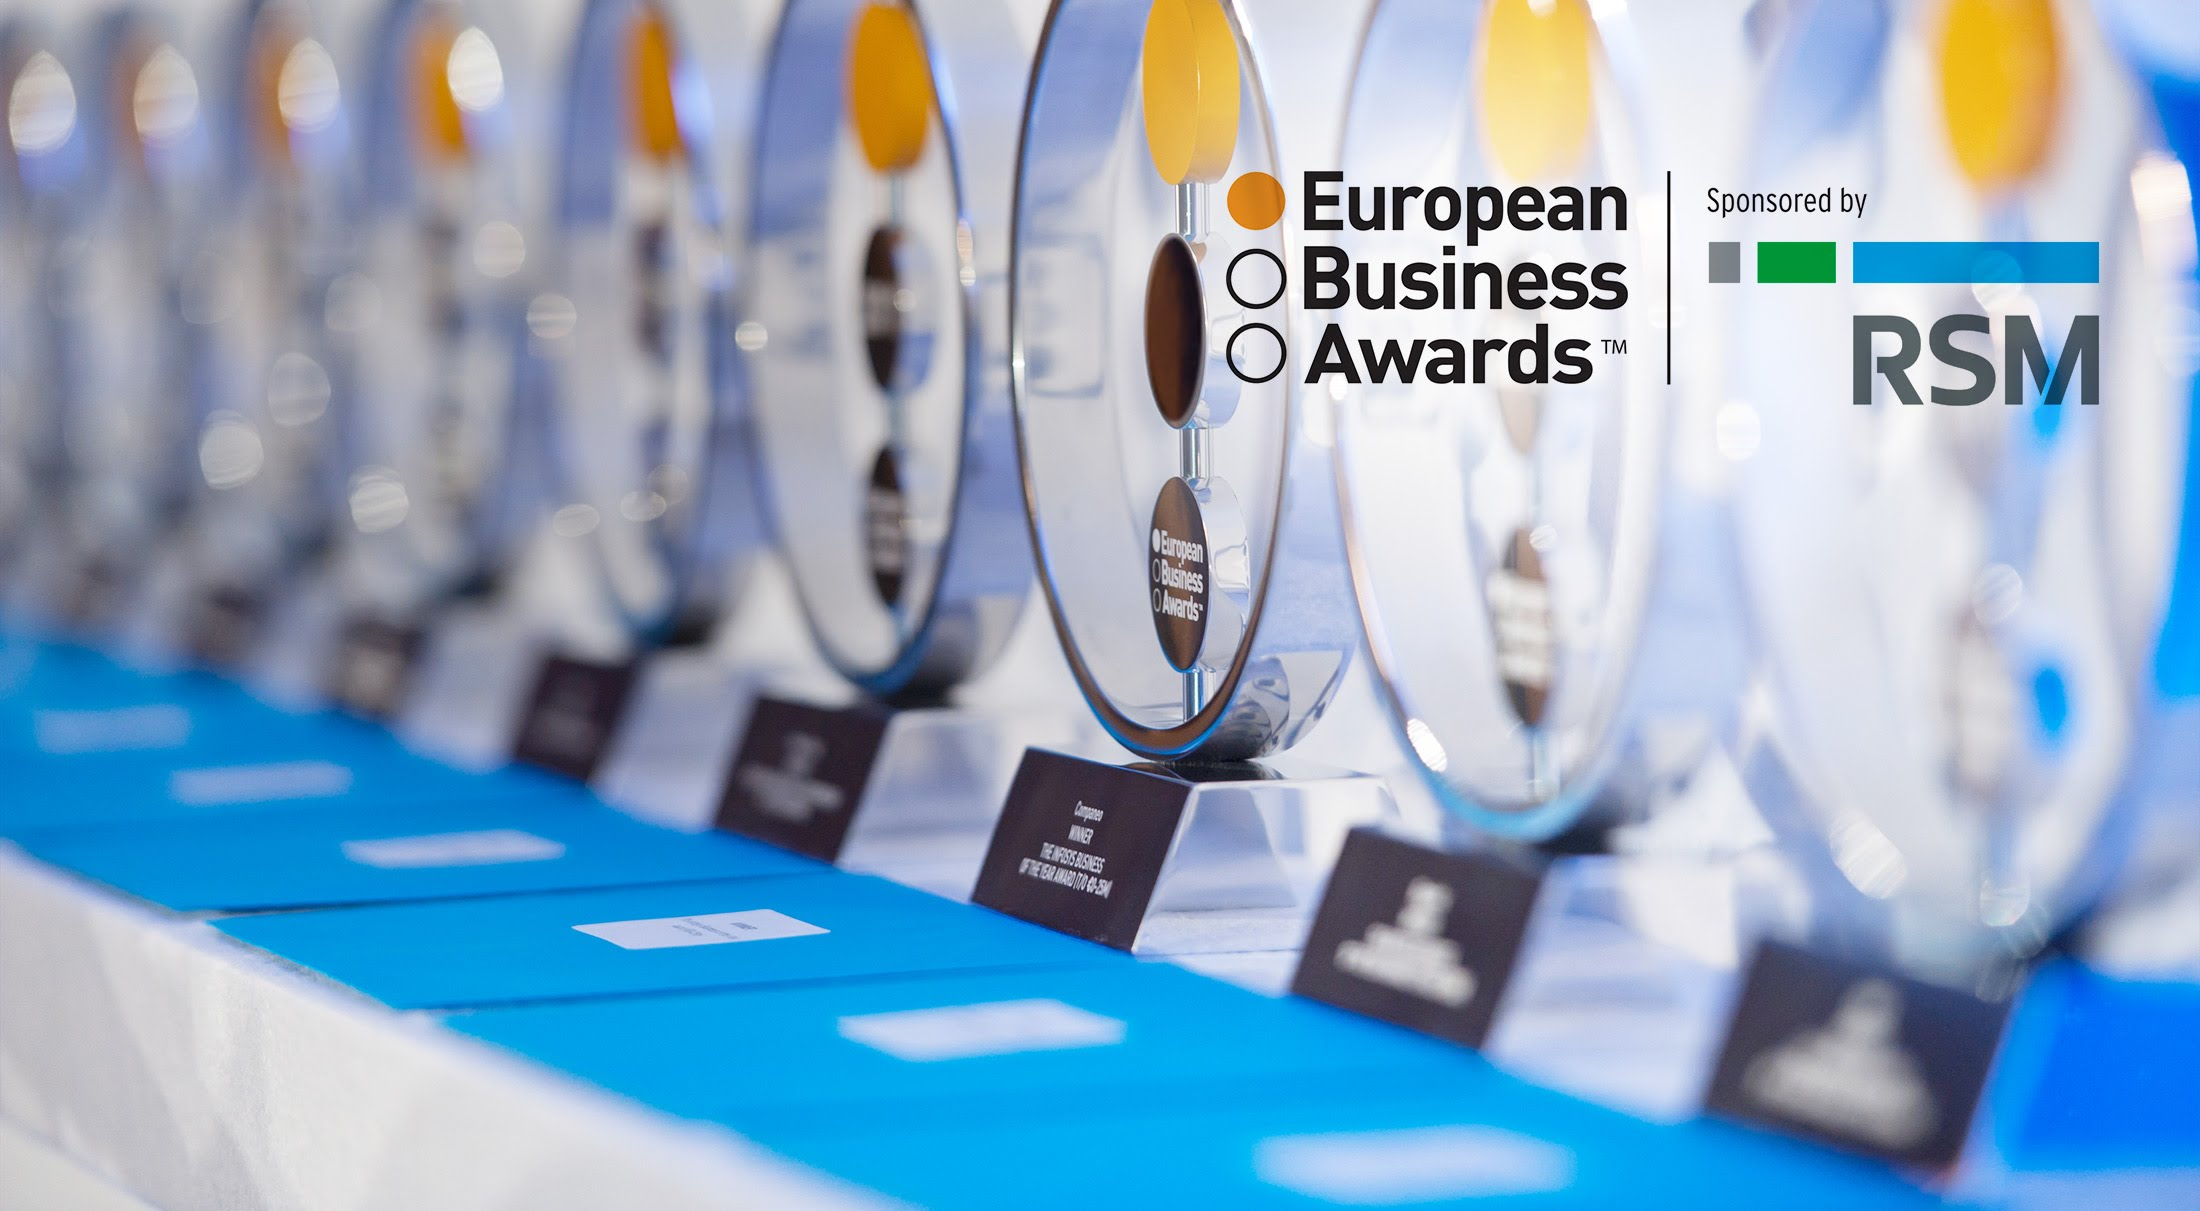 110 firms named as finalists in Europe's largest Business Awards